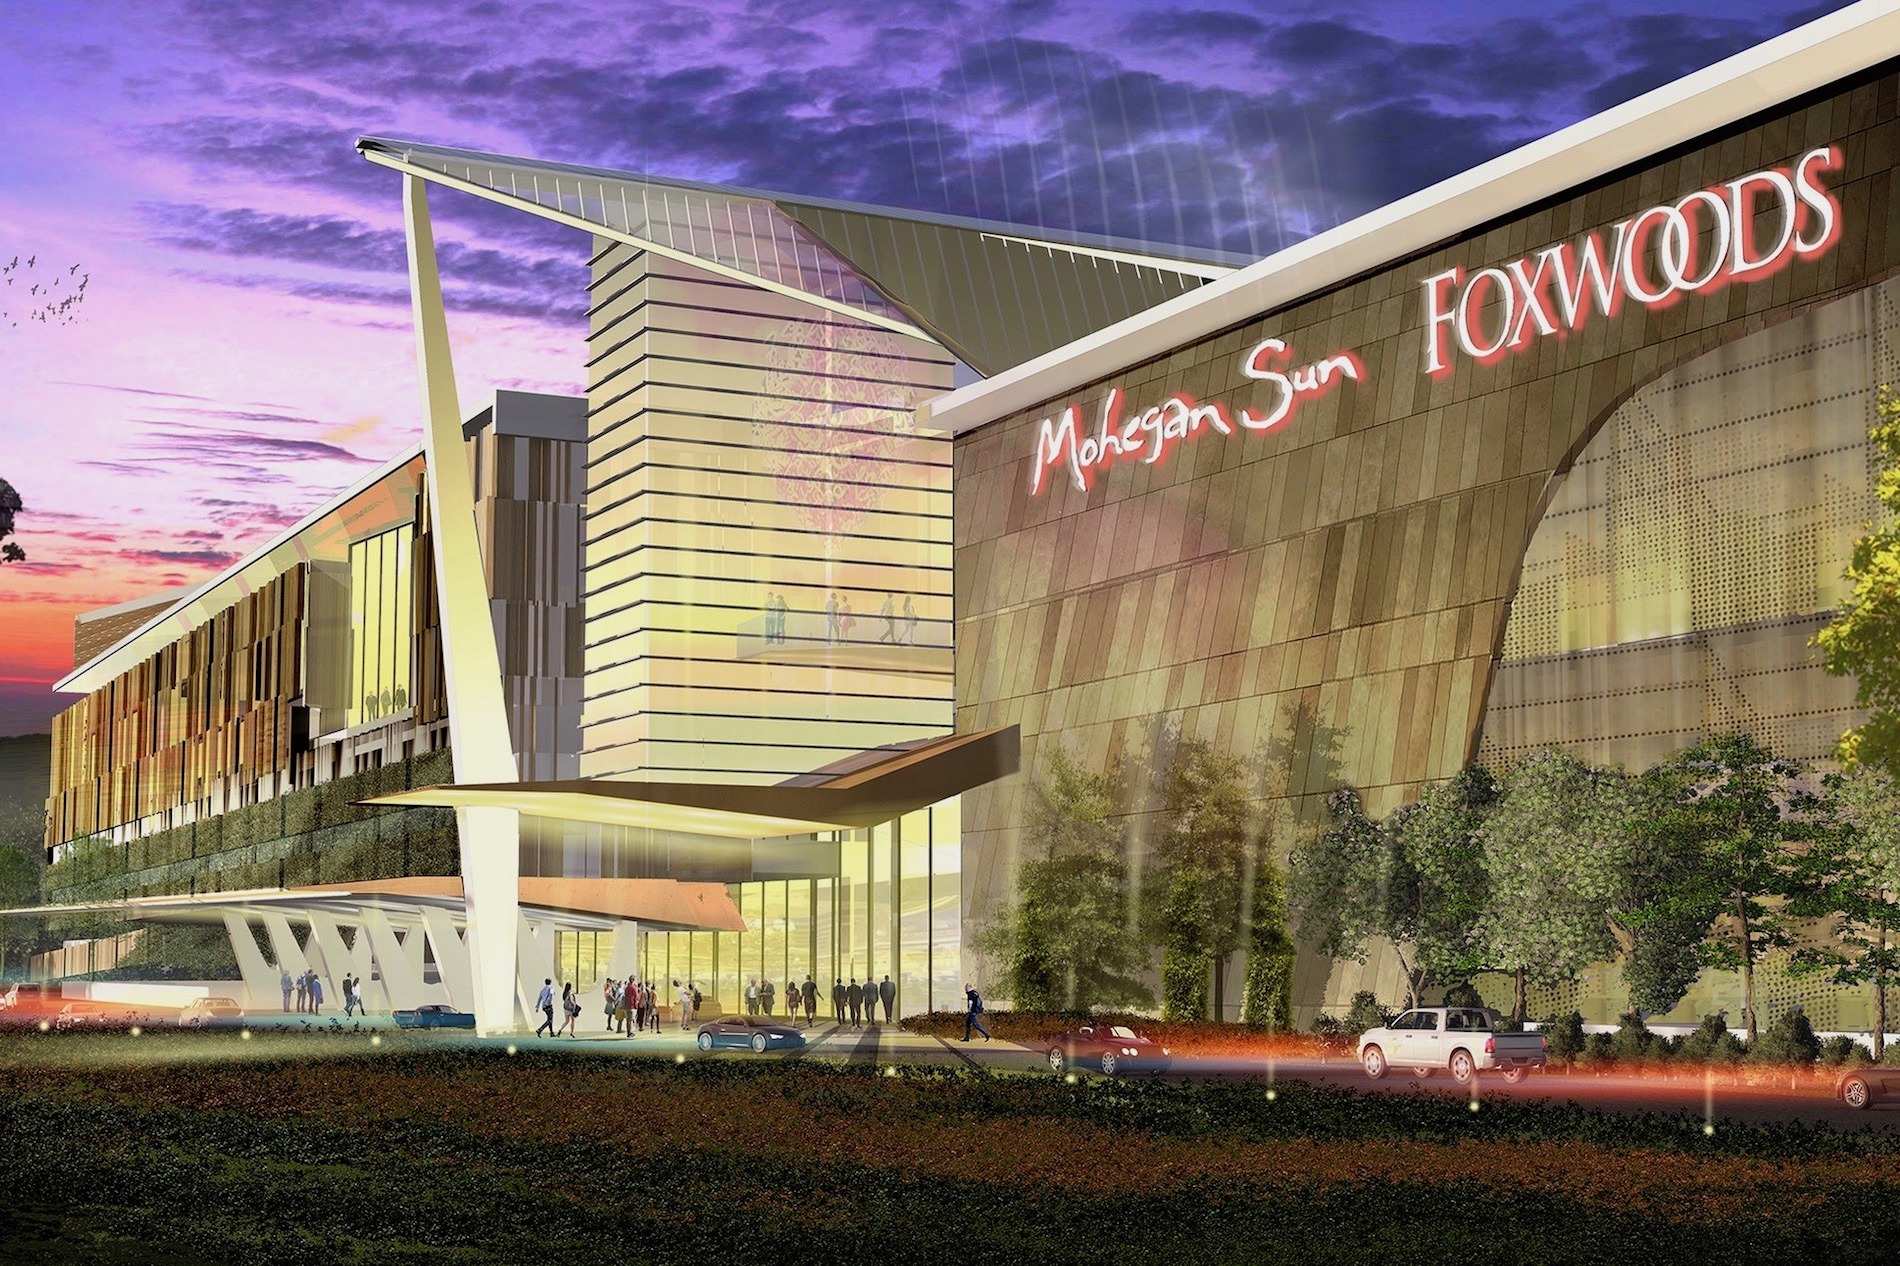 Connecticut tribes promise to share more revenue from new casino